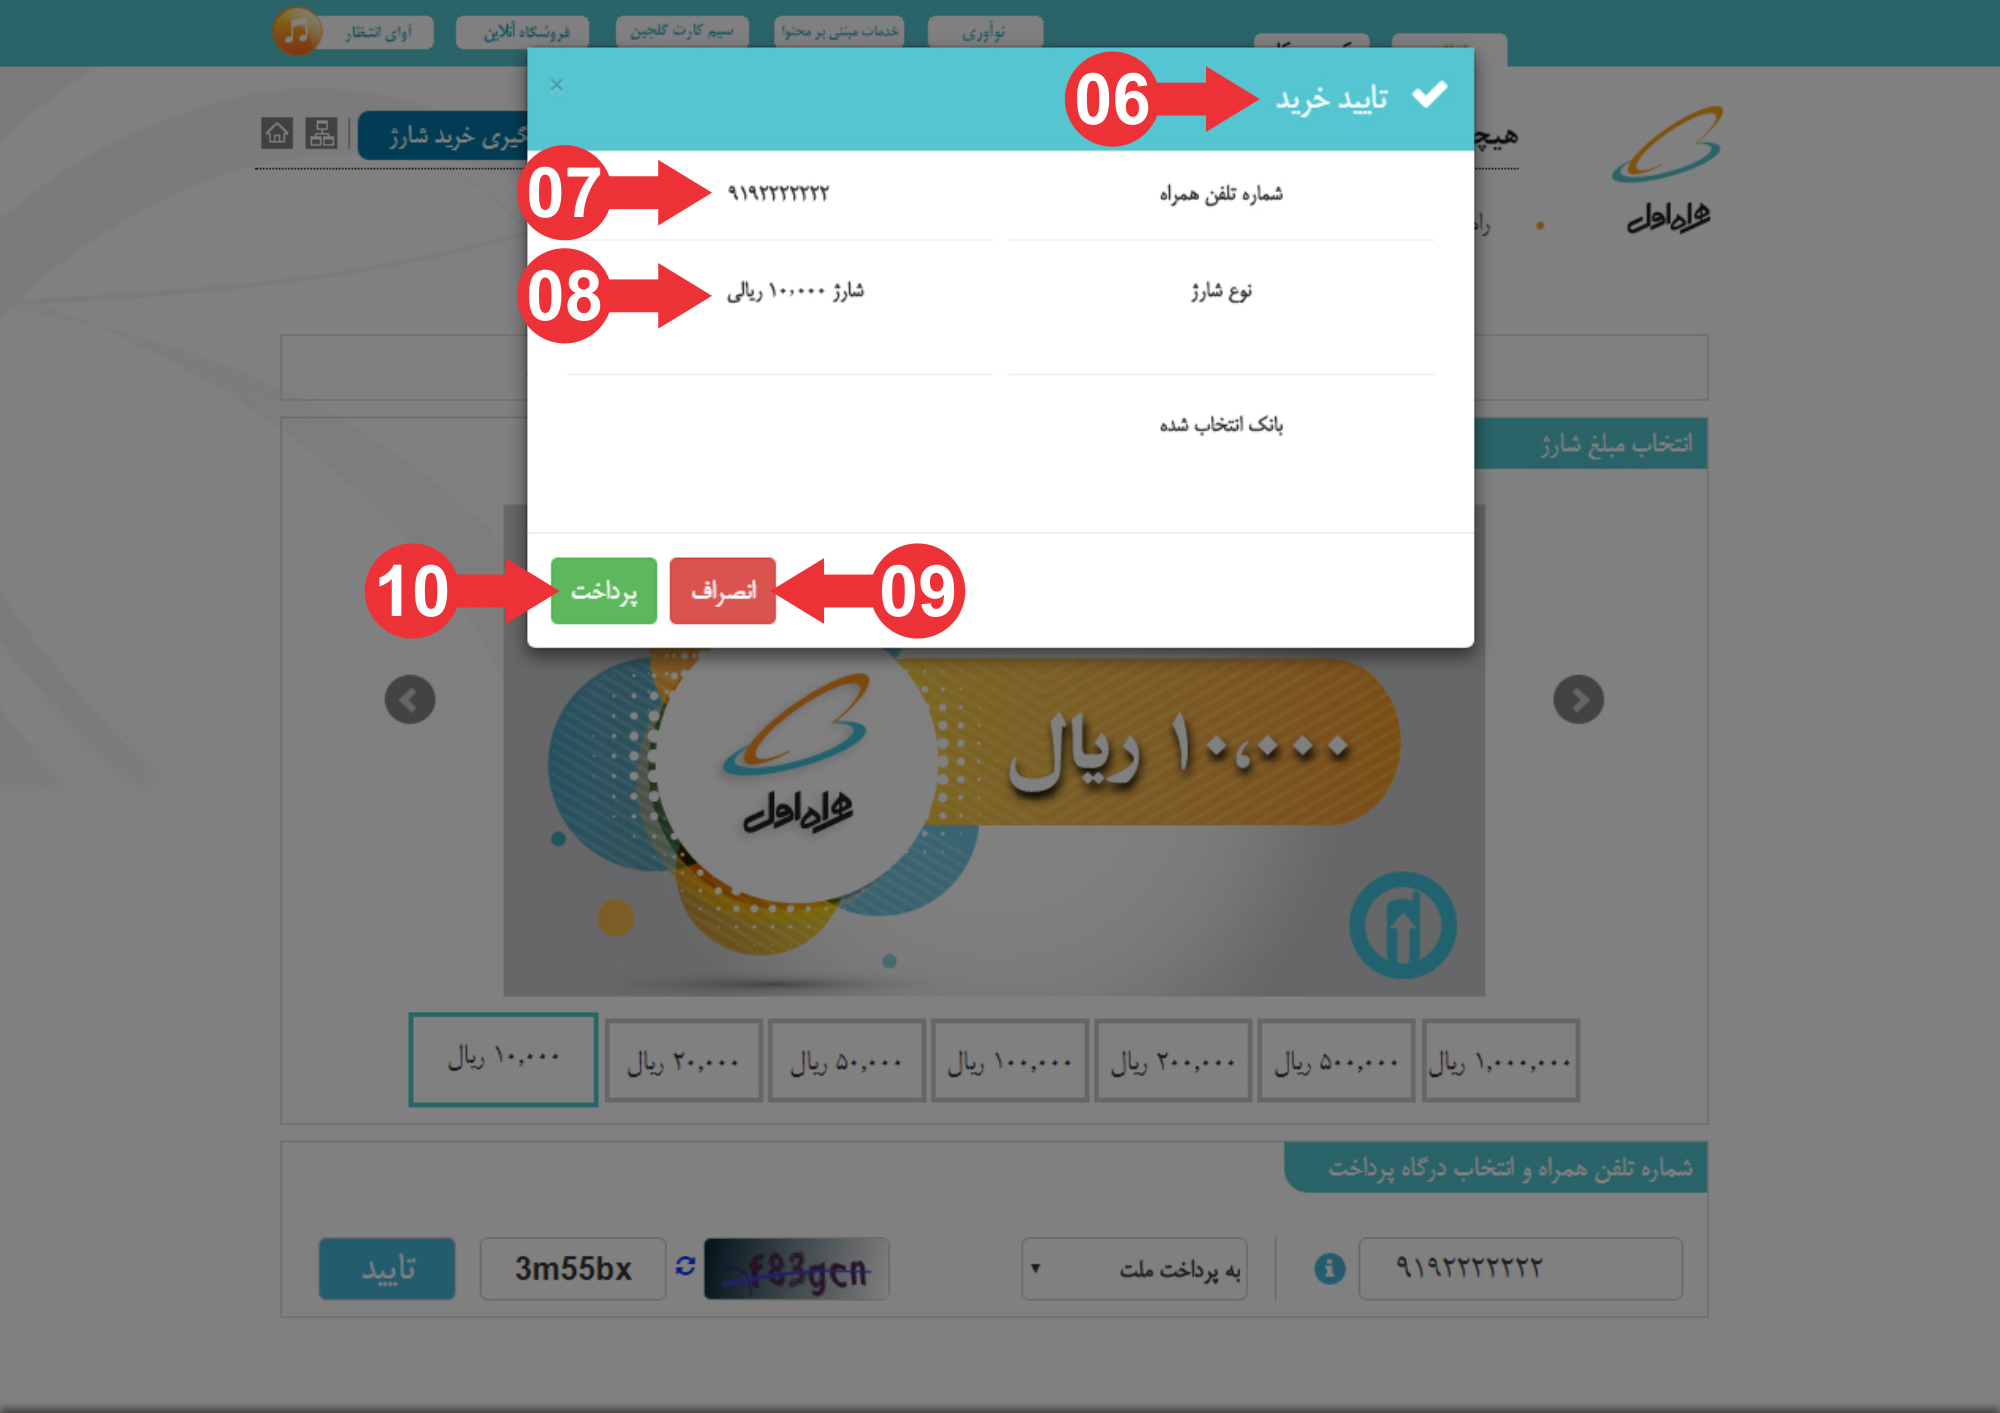 Second step for recharging SIM card for Internet access in Iran